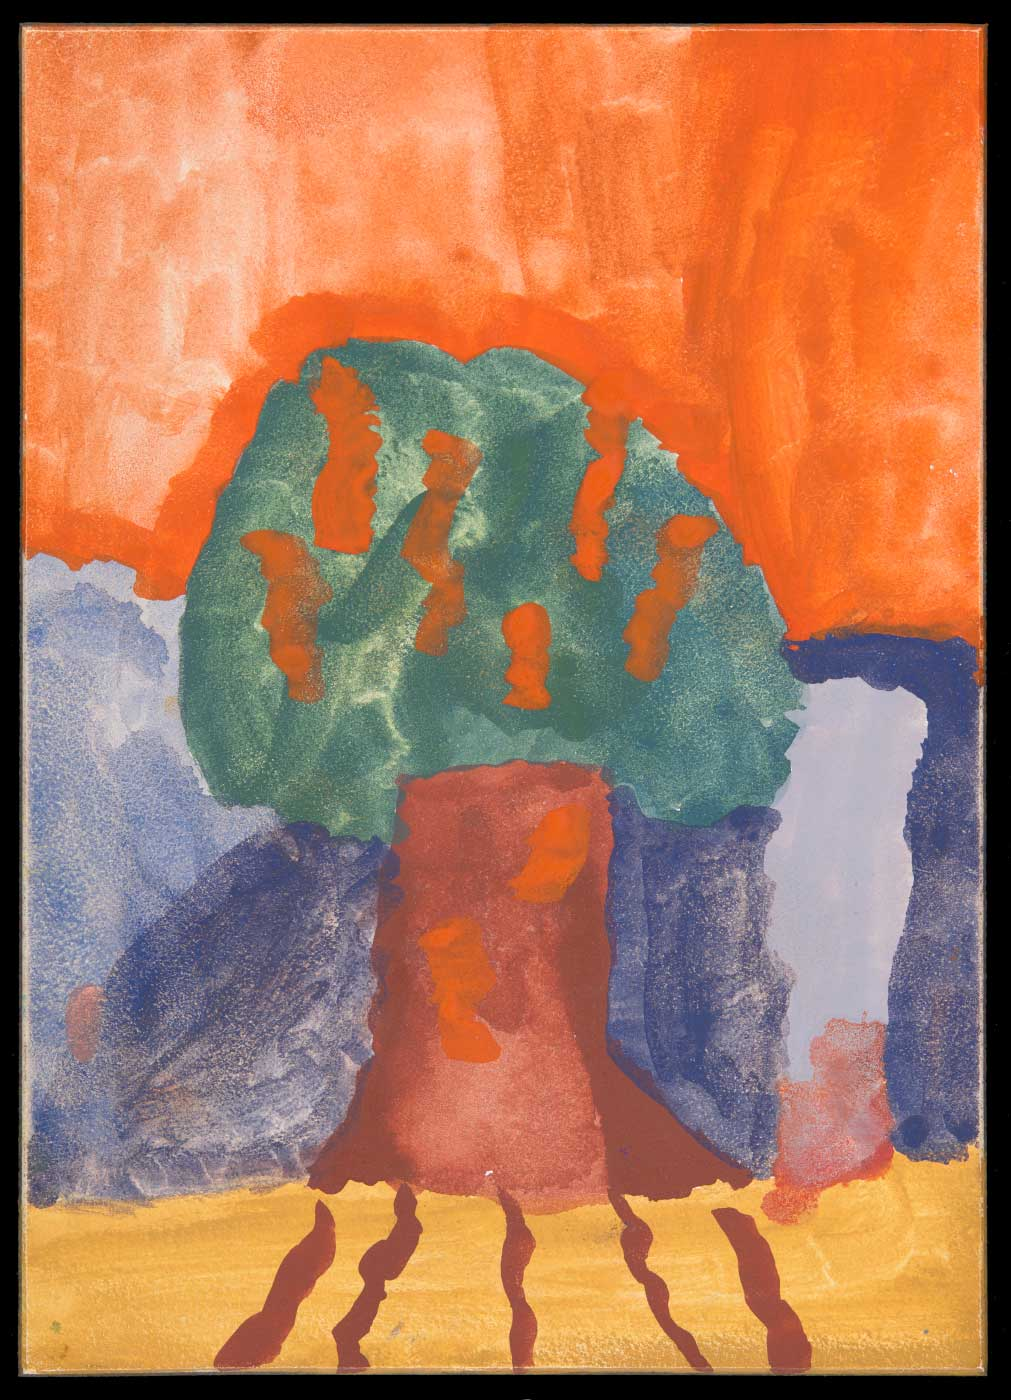 Painting on aquabord, depicting a tree against a purple background and orange sky. - click to view larger image